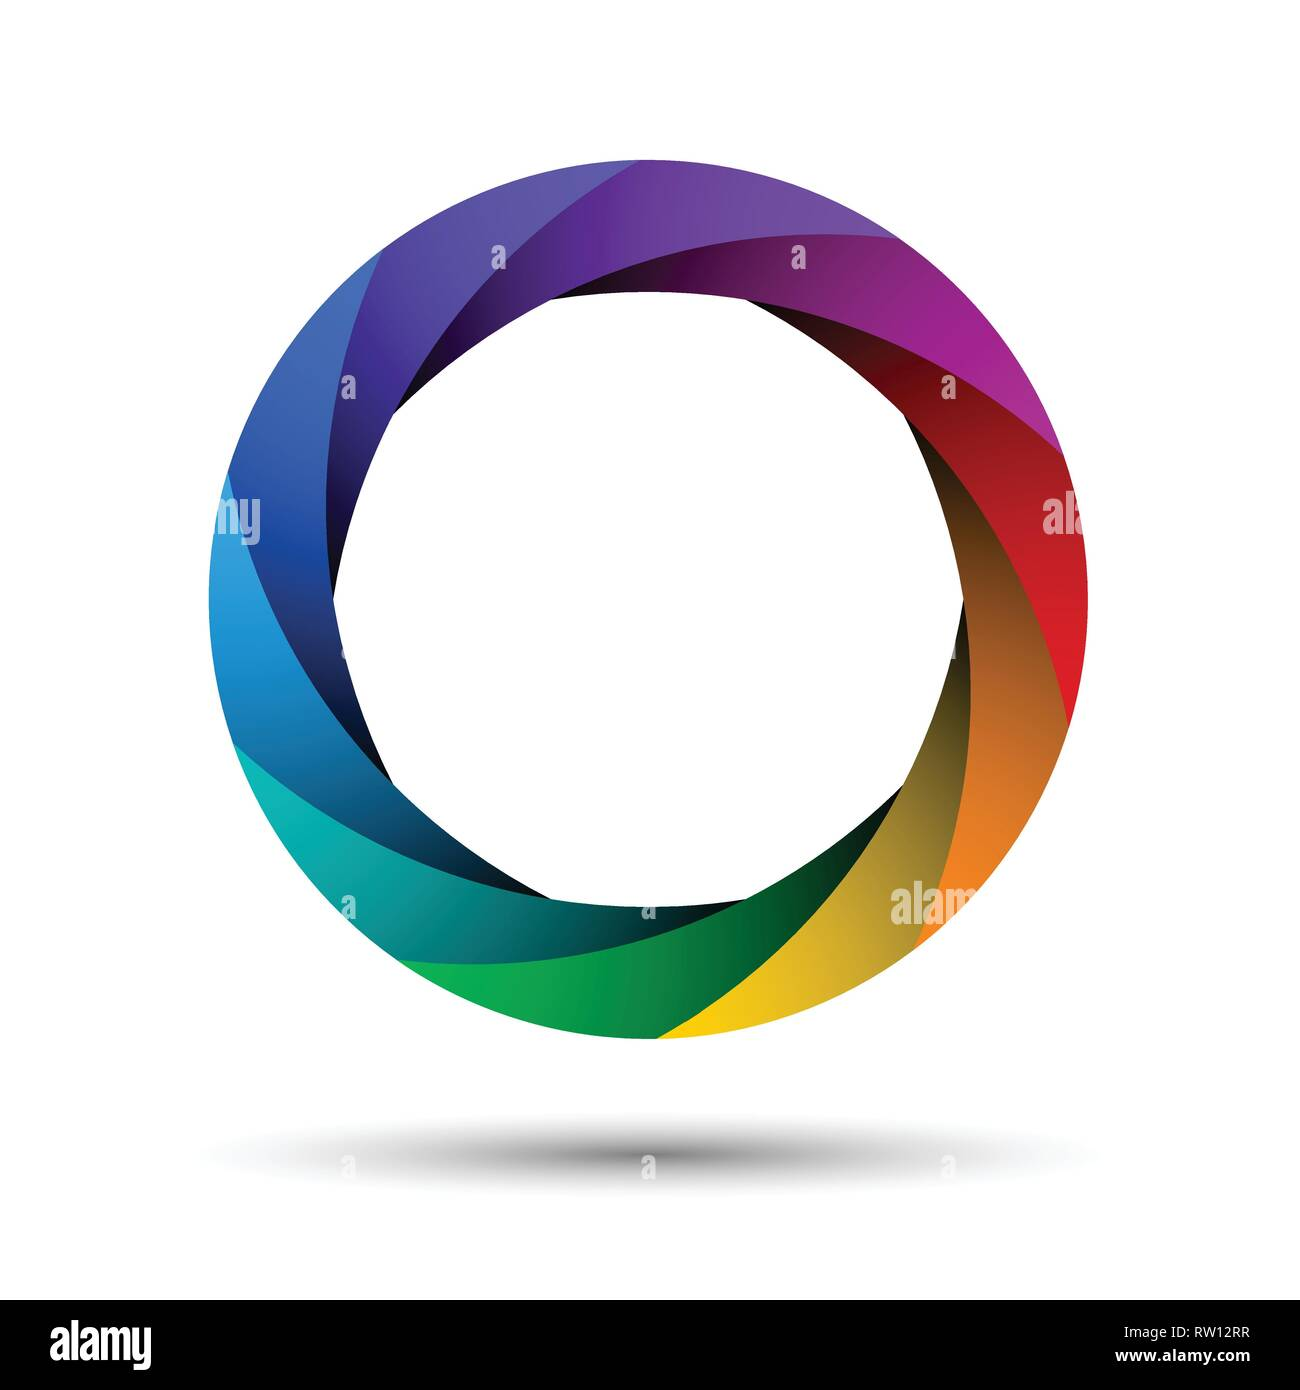 Colorful camera shutter aperture. Abstract shape, infinite loop icon. Infographic example. Multicolor ring isolated on white background. - Stock Image